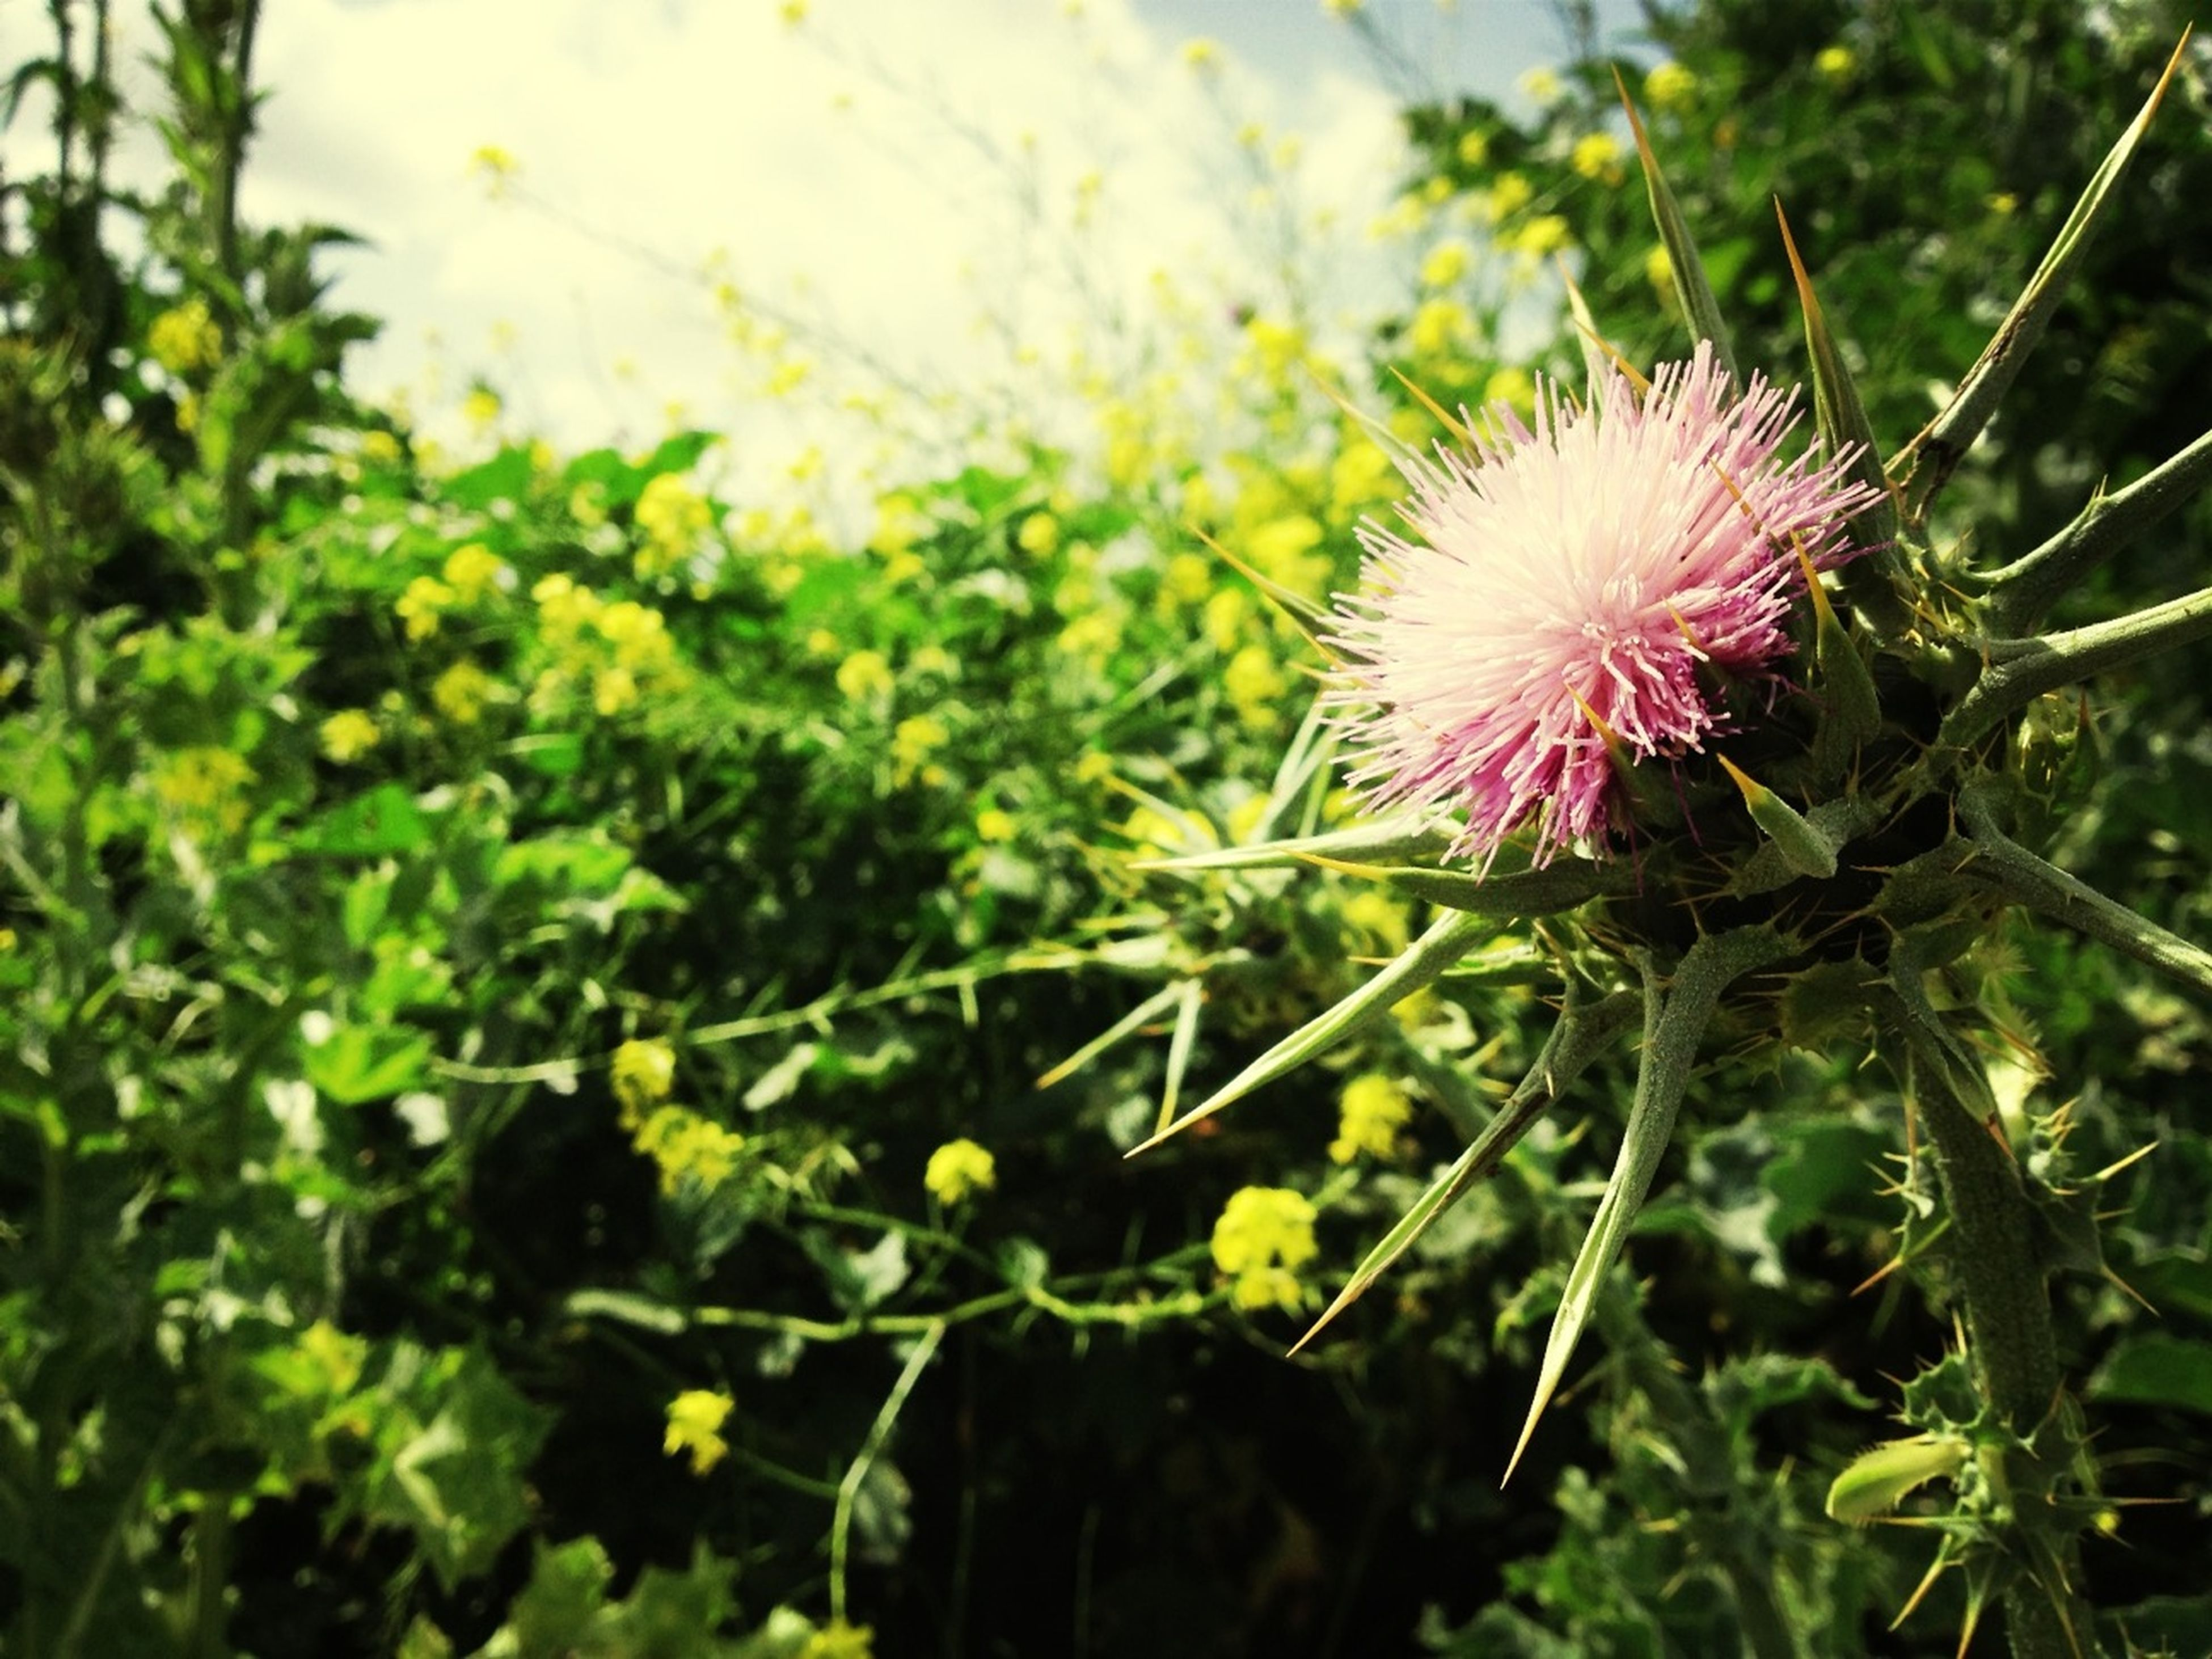 flower, growth, freshness, fragility, beauty in nature, plant, flower head, nature, pink color, blooming, close-up, focus on foreground, petal, in bloom, leaf, blossom, day, stem, green color, park - man made space